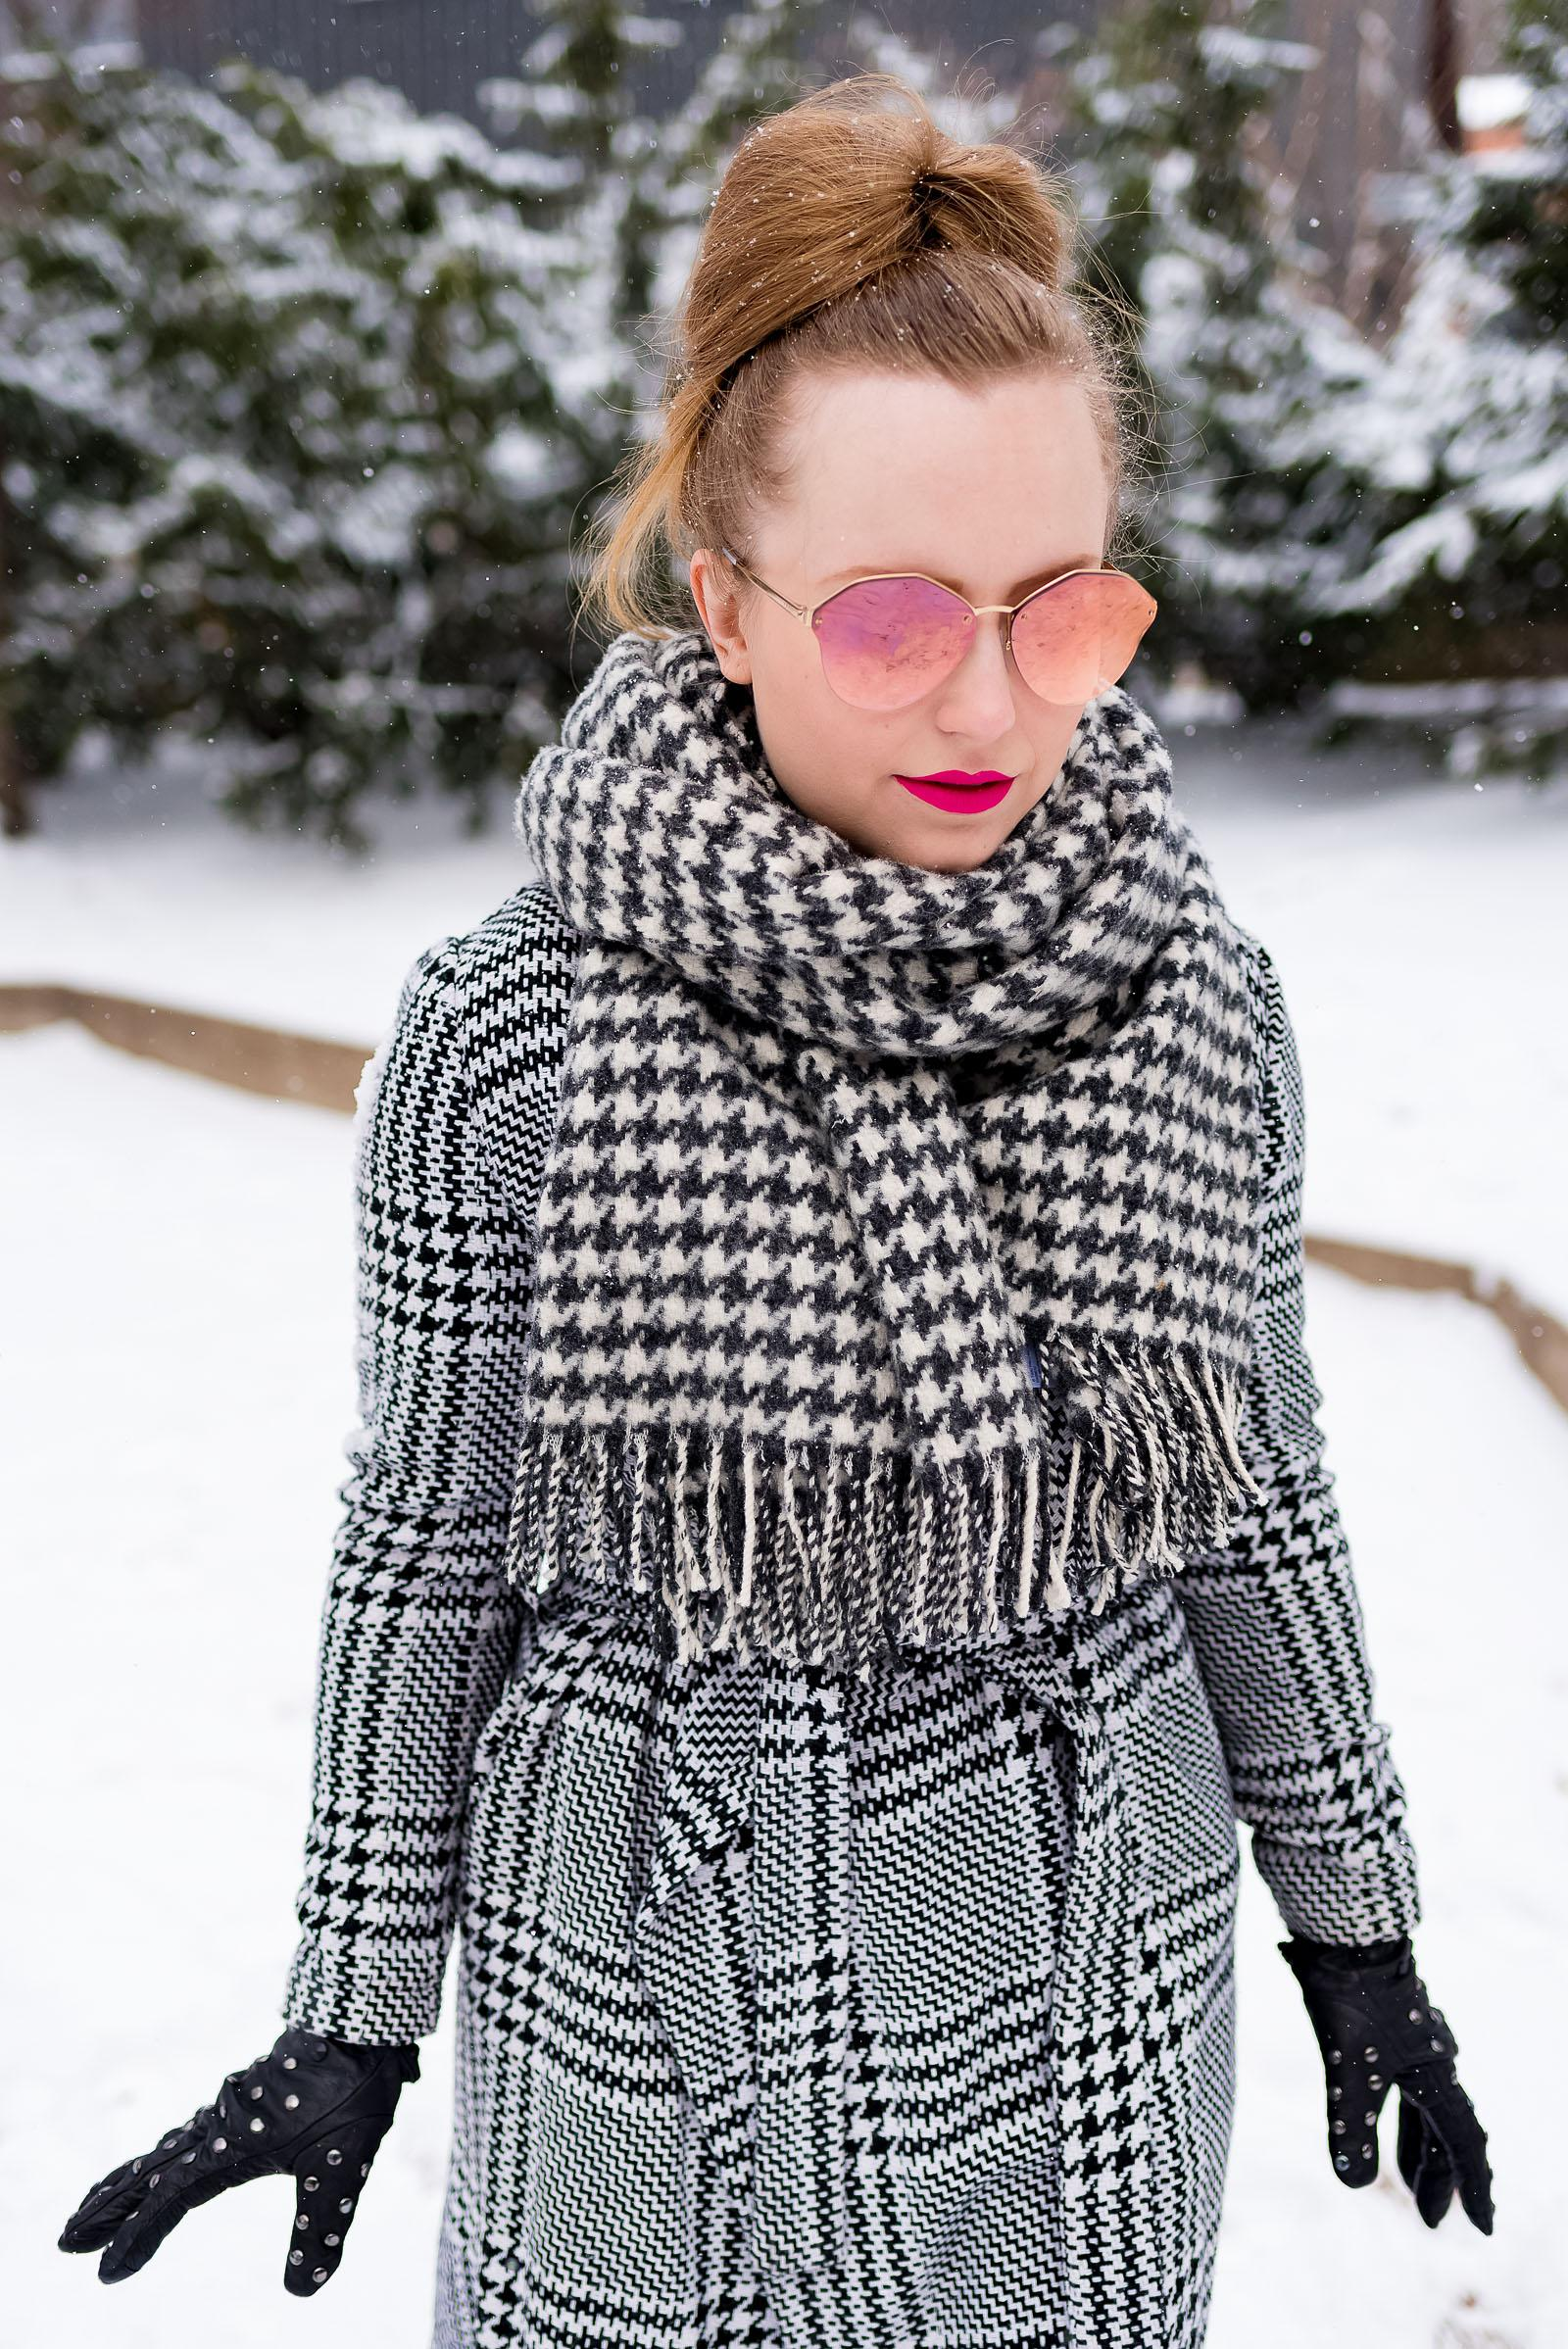 Chic Snow Style